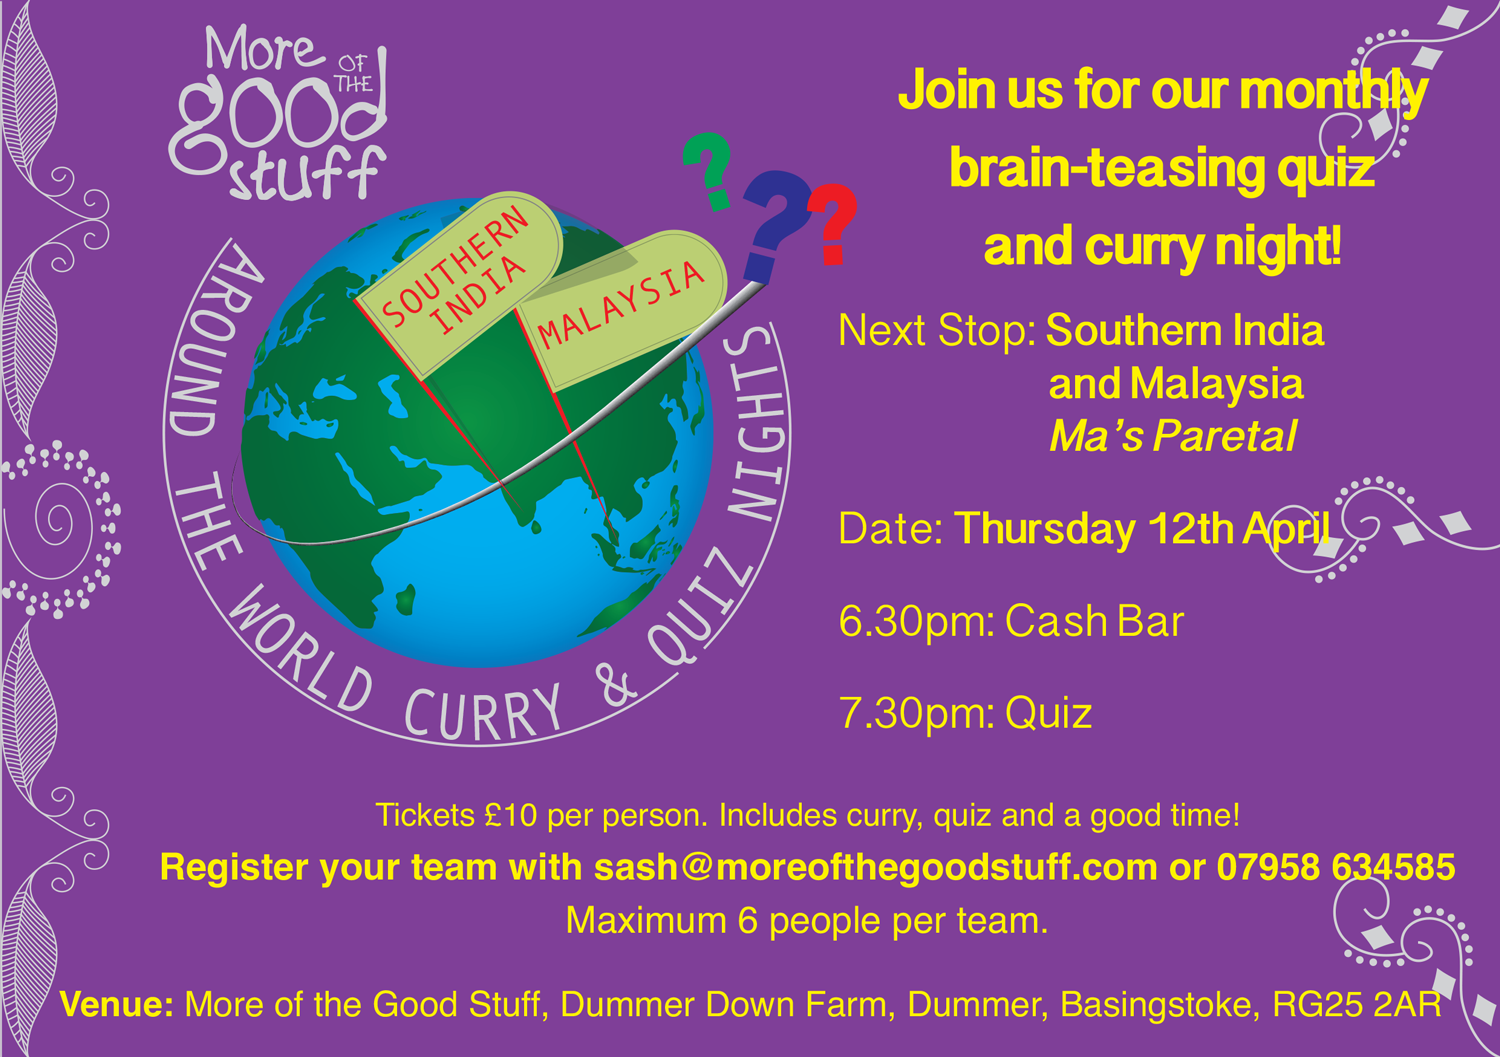 MOTGS Curry and Quiz Night